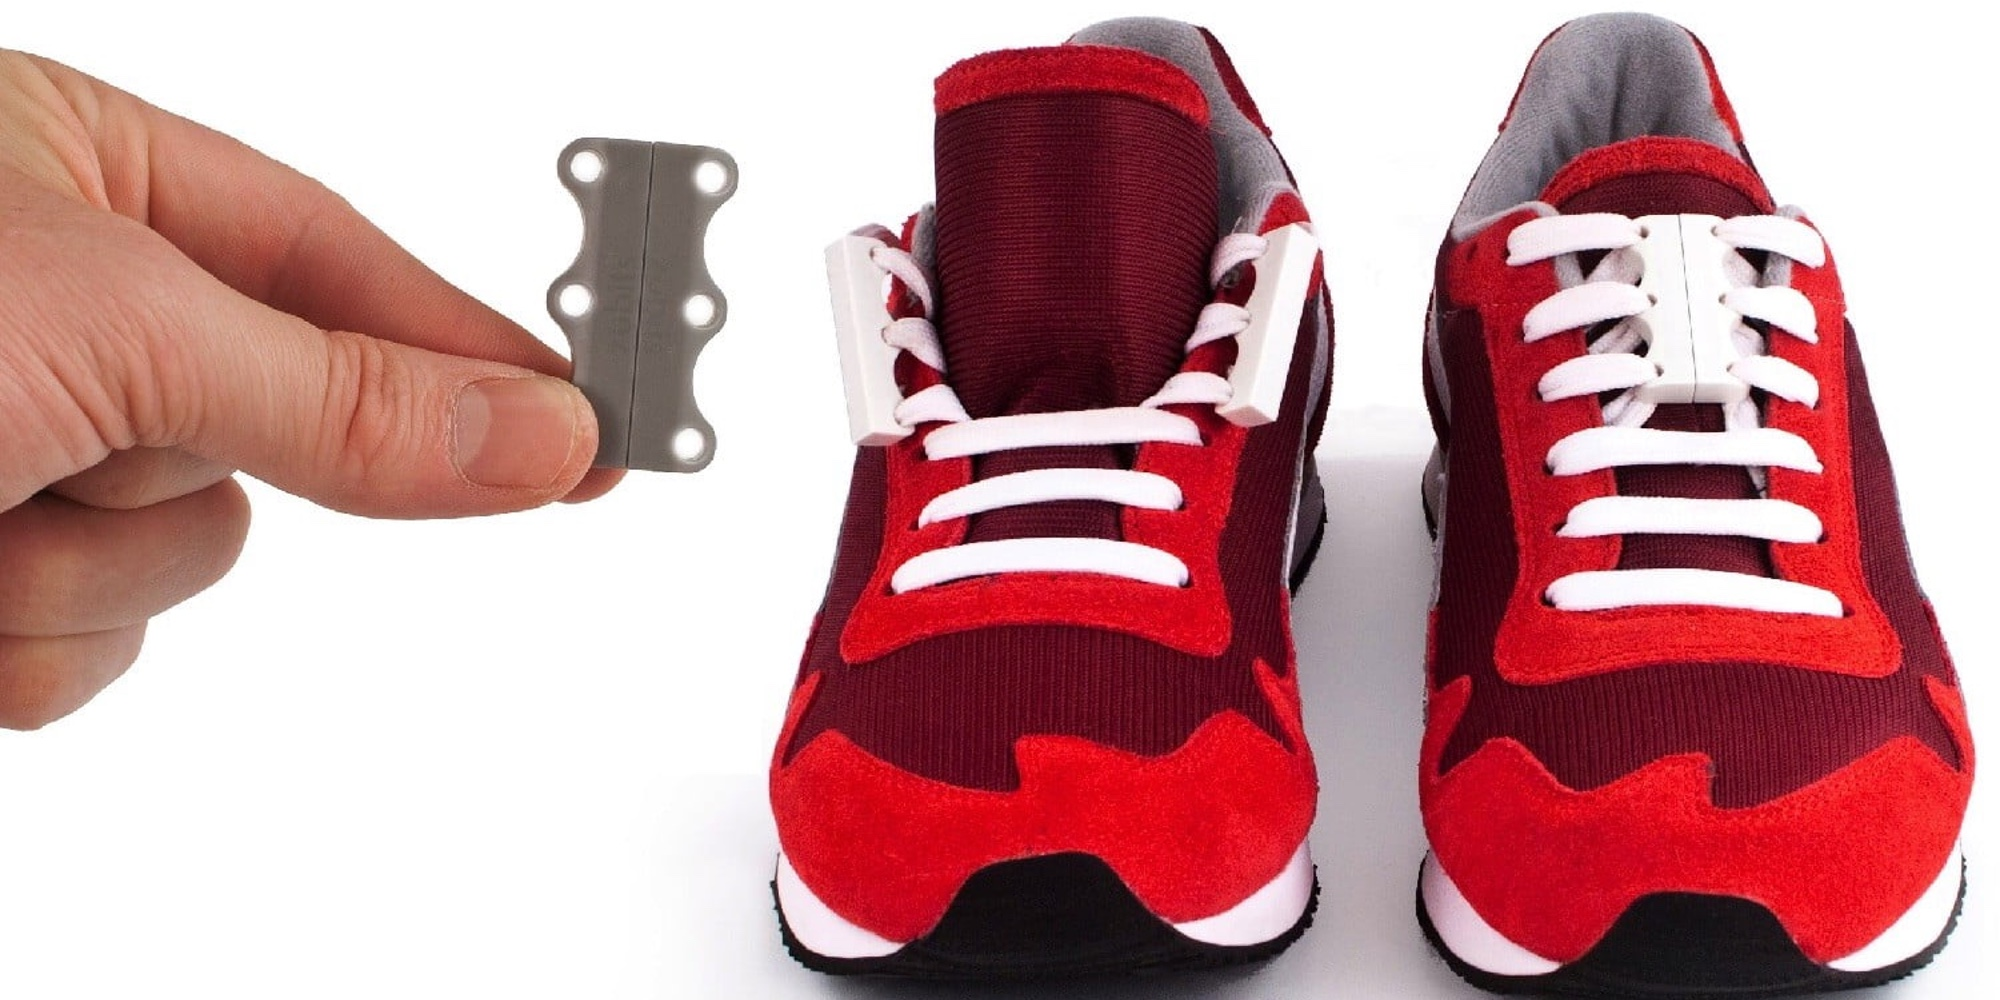 You'll never have to tie shoe laces again with the Zubits magnetic system